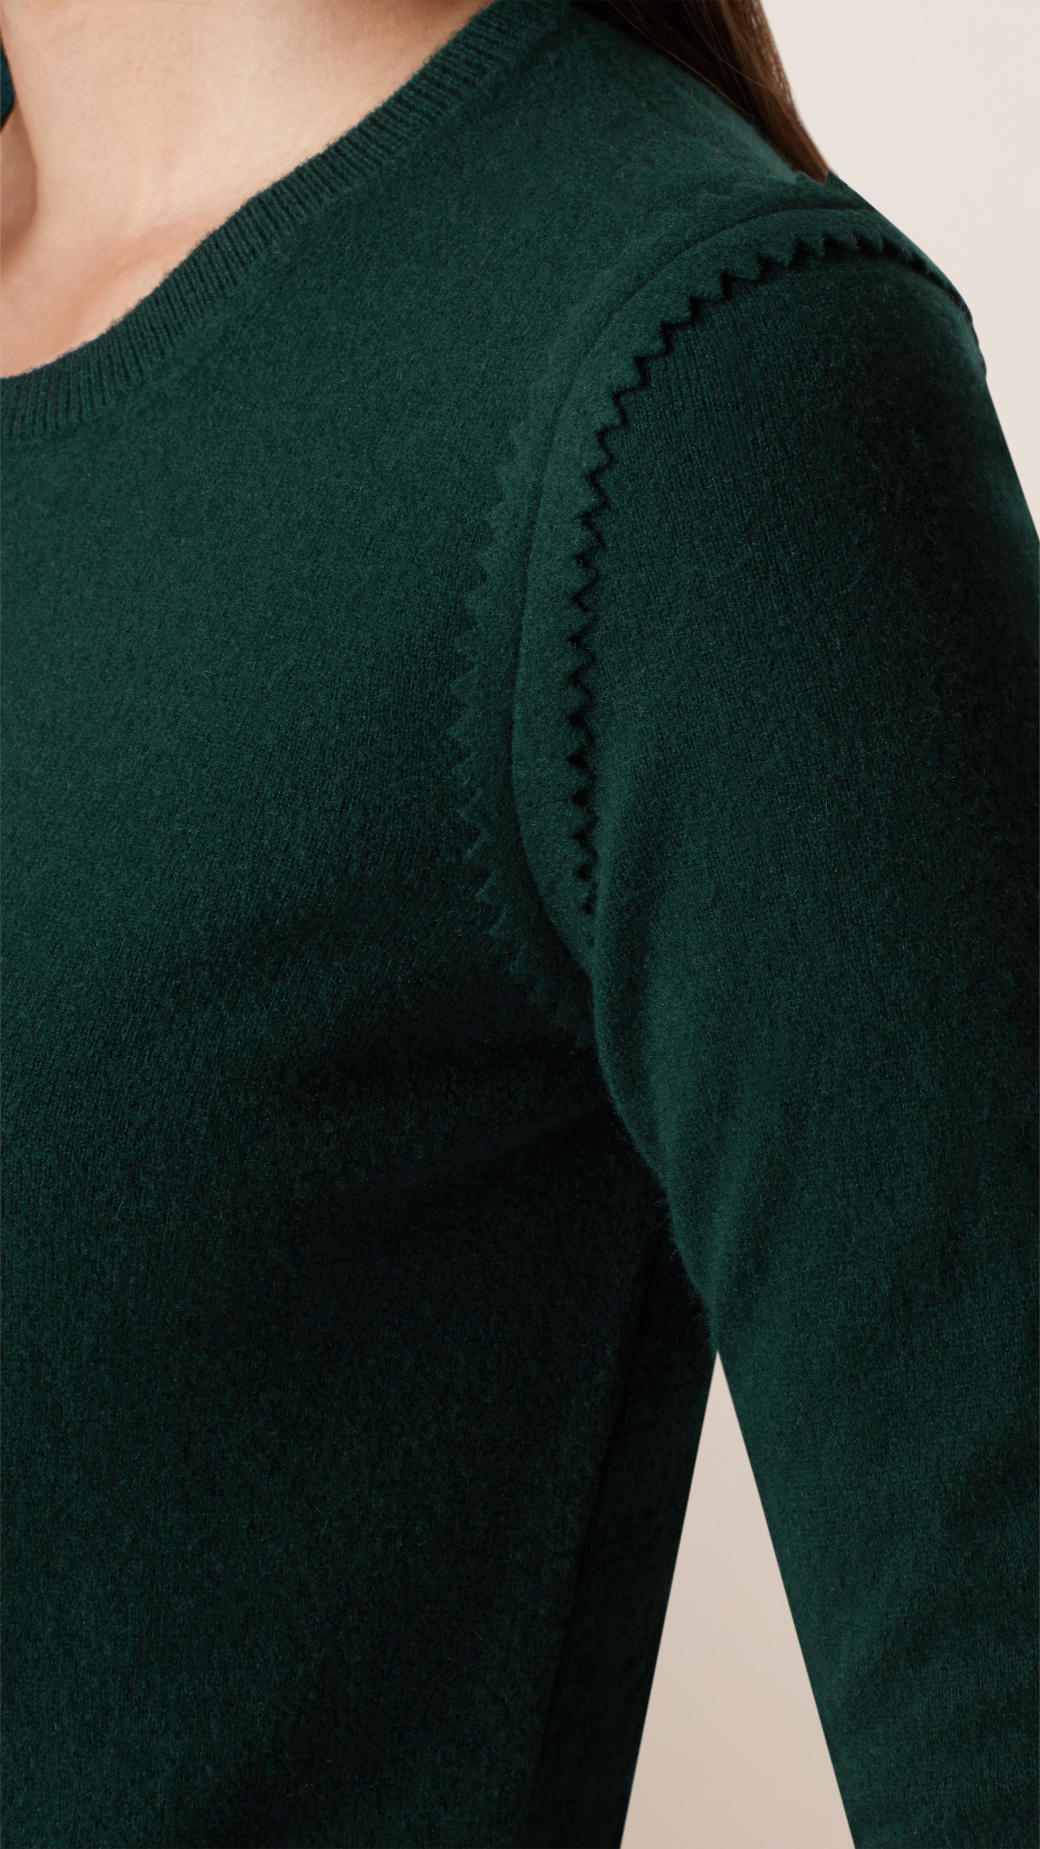 Burberry Slim Fit Virgin Wool Cashmere Sweater in Green | Lyst